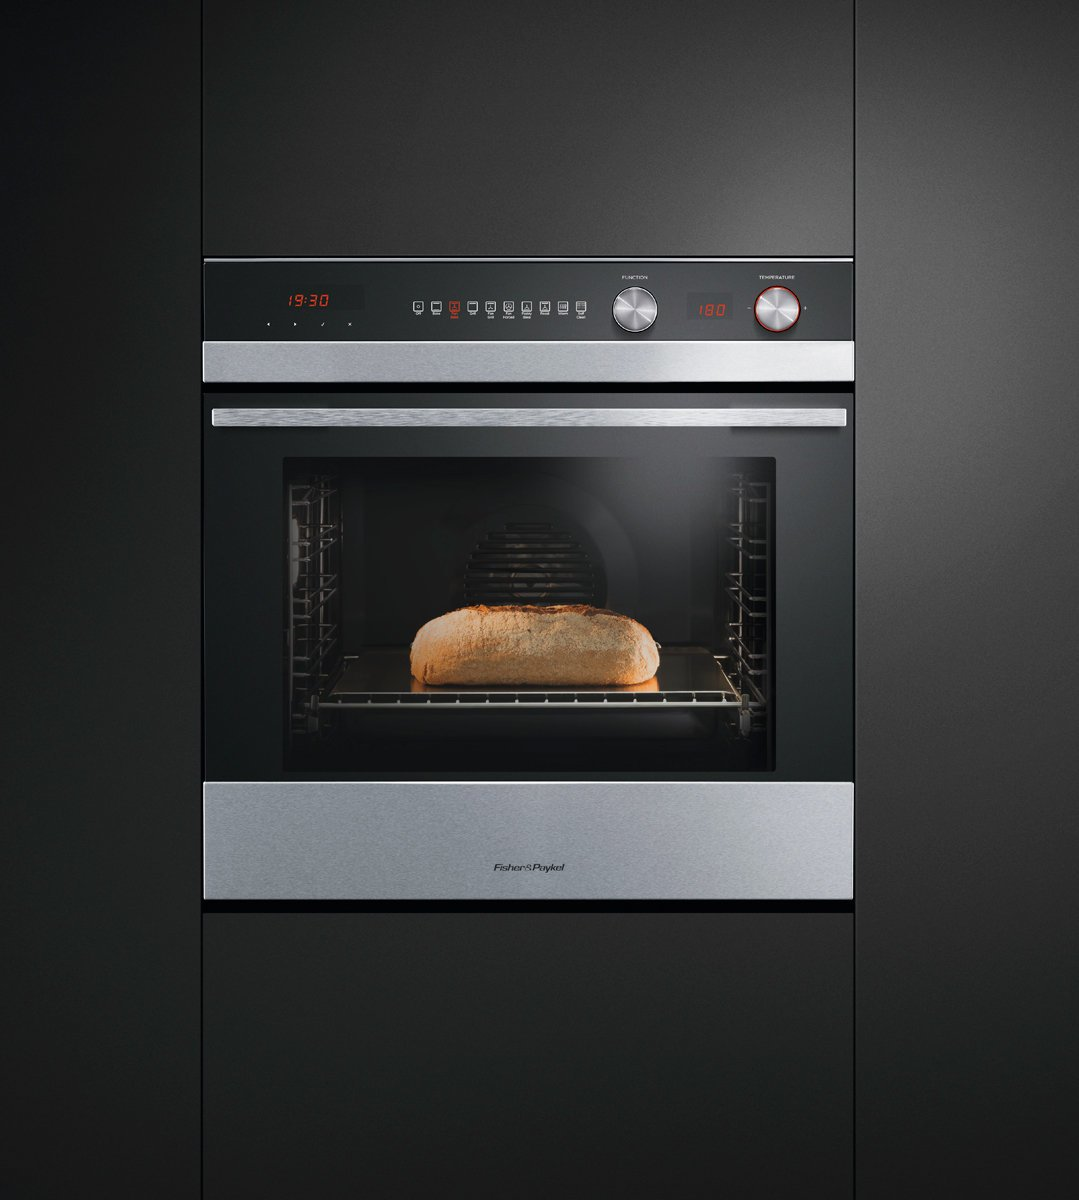 Fisher Paykel OB60SC9DEPX1 72L Electric Wall Oven in wall high.jpeg